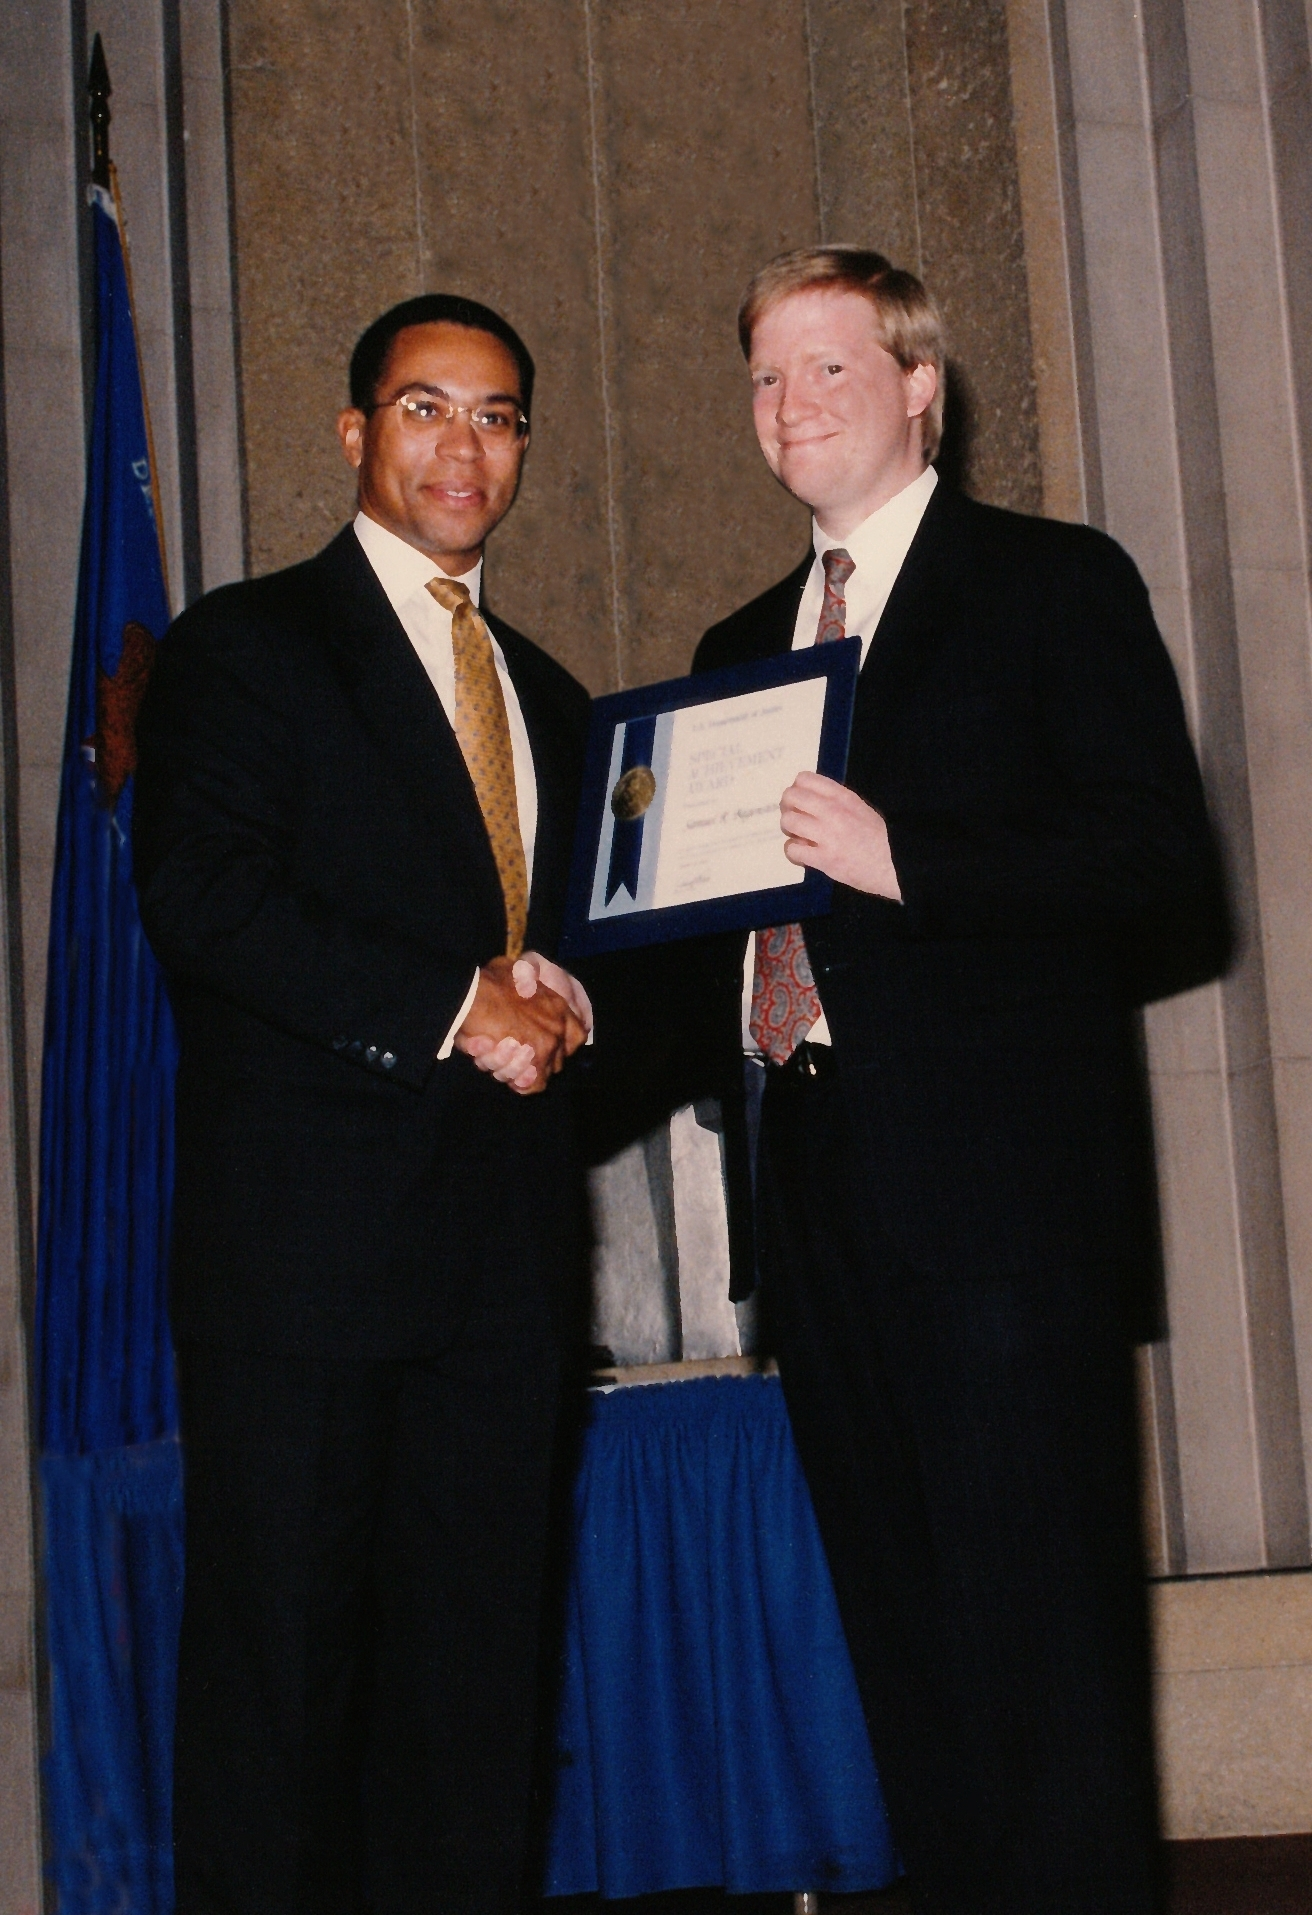 Sam receives an award from Gov. Deval Patrick, then the head of the Civil Rights Division at the U.S. Department of Justice